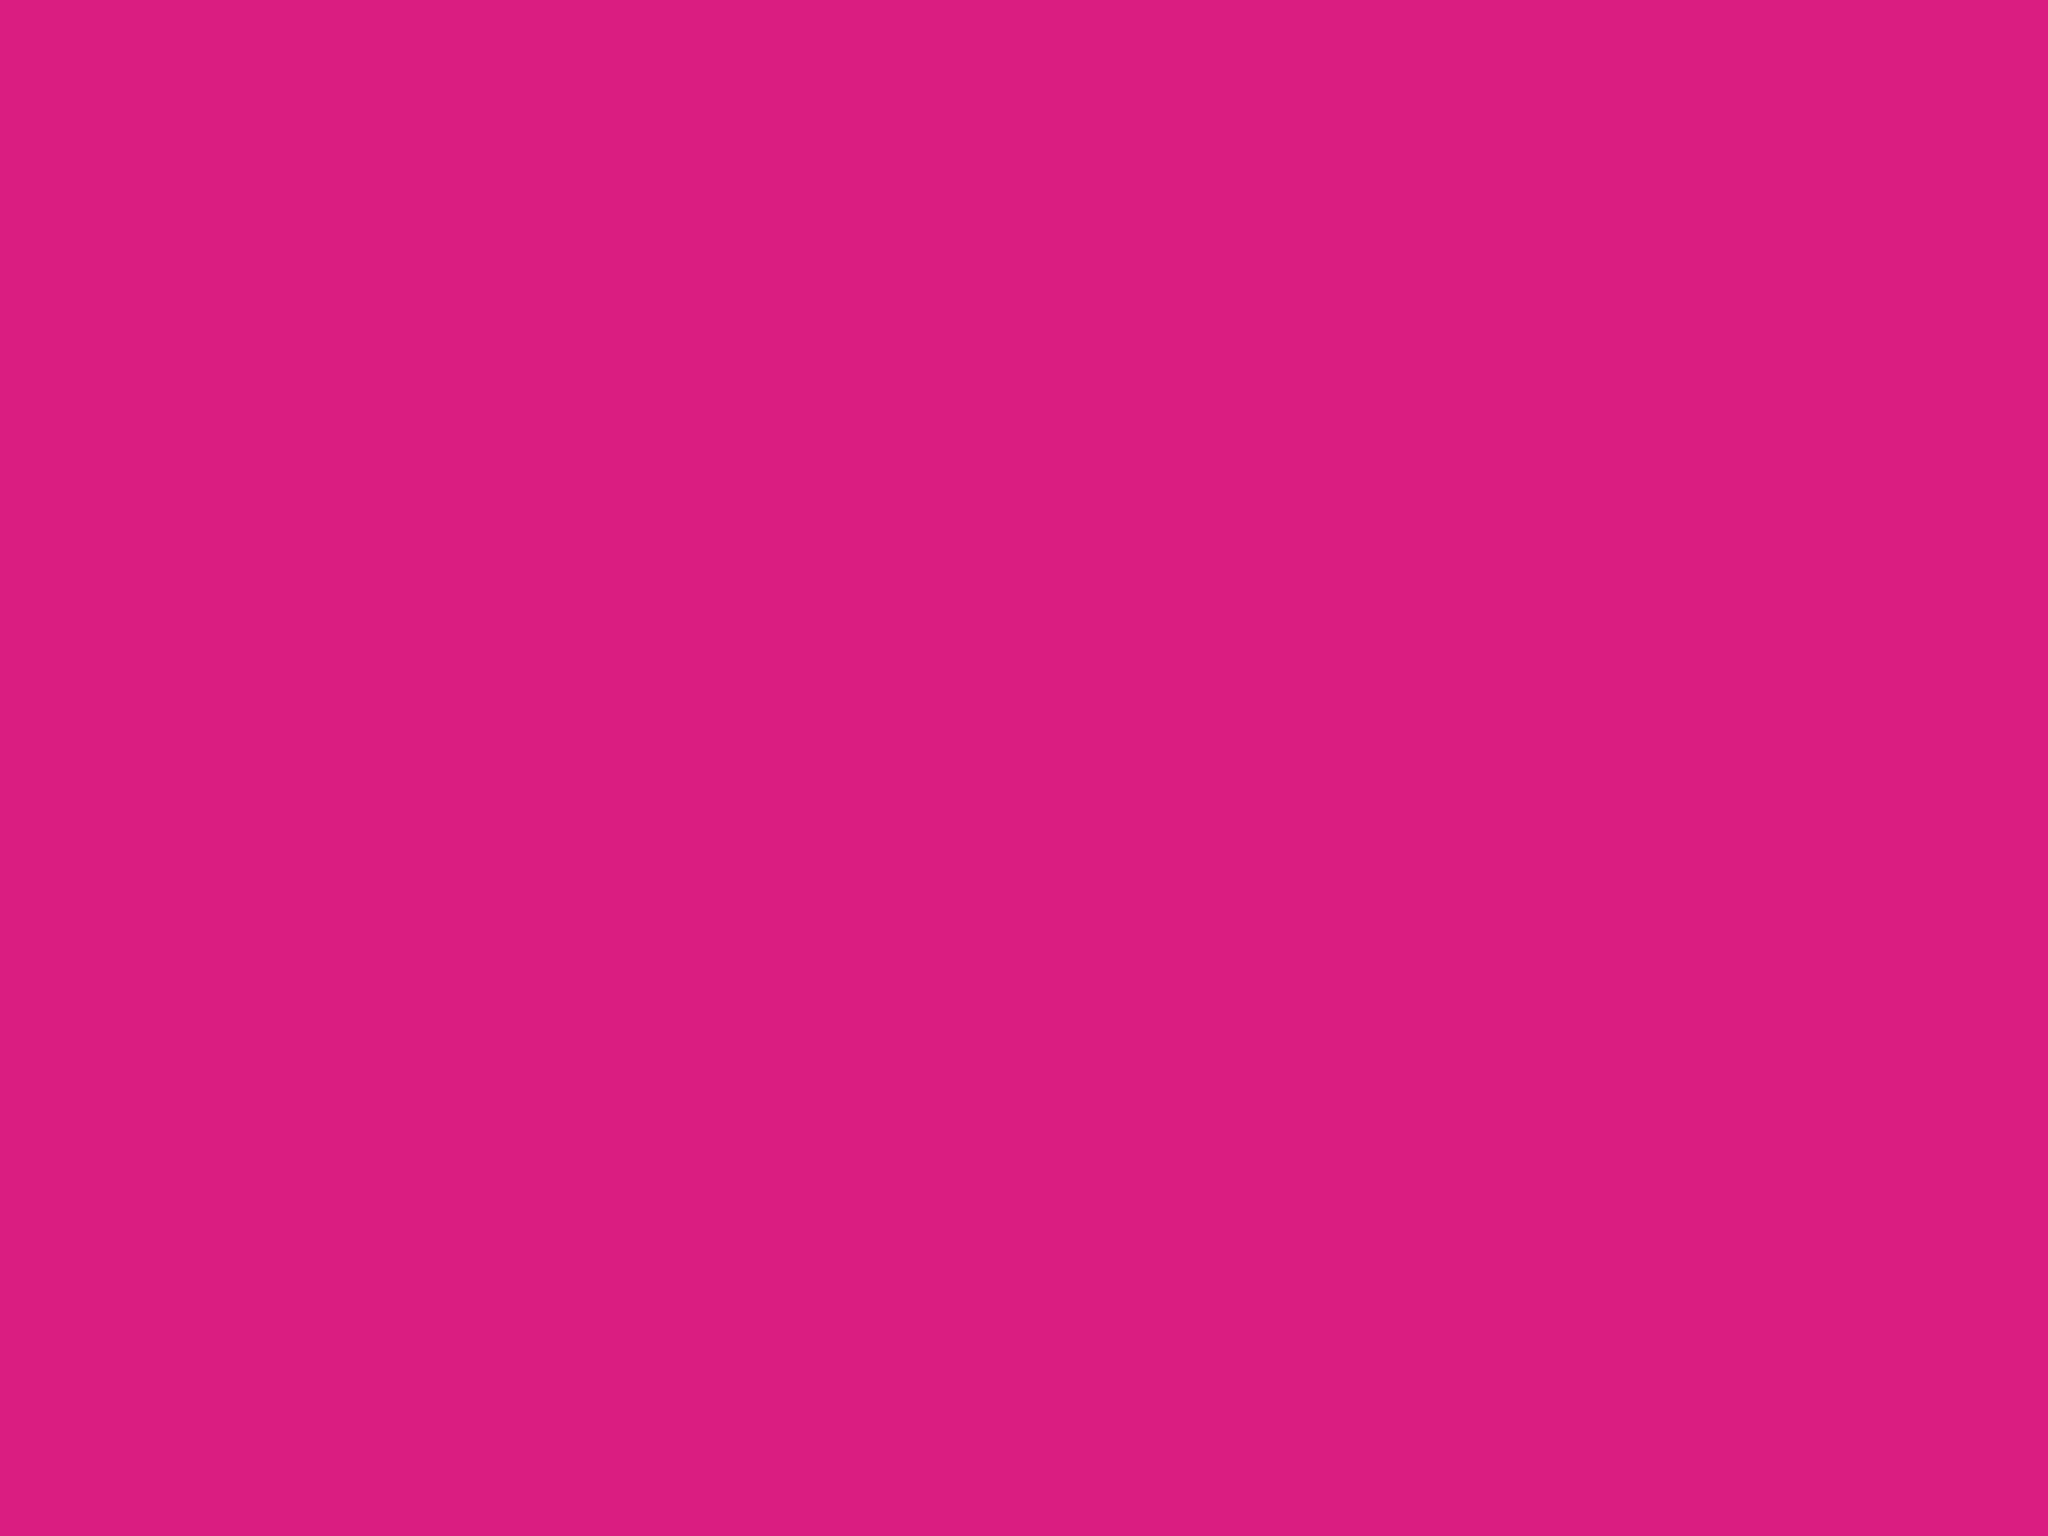 2048x1536 Vivid Cerise Solid Color Background